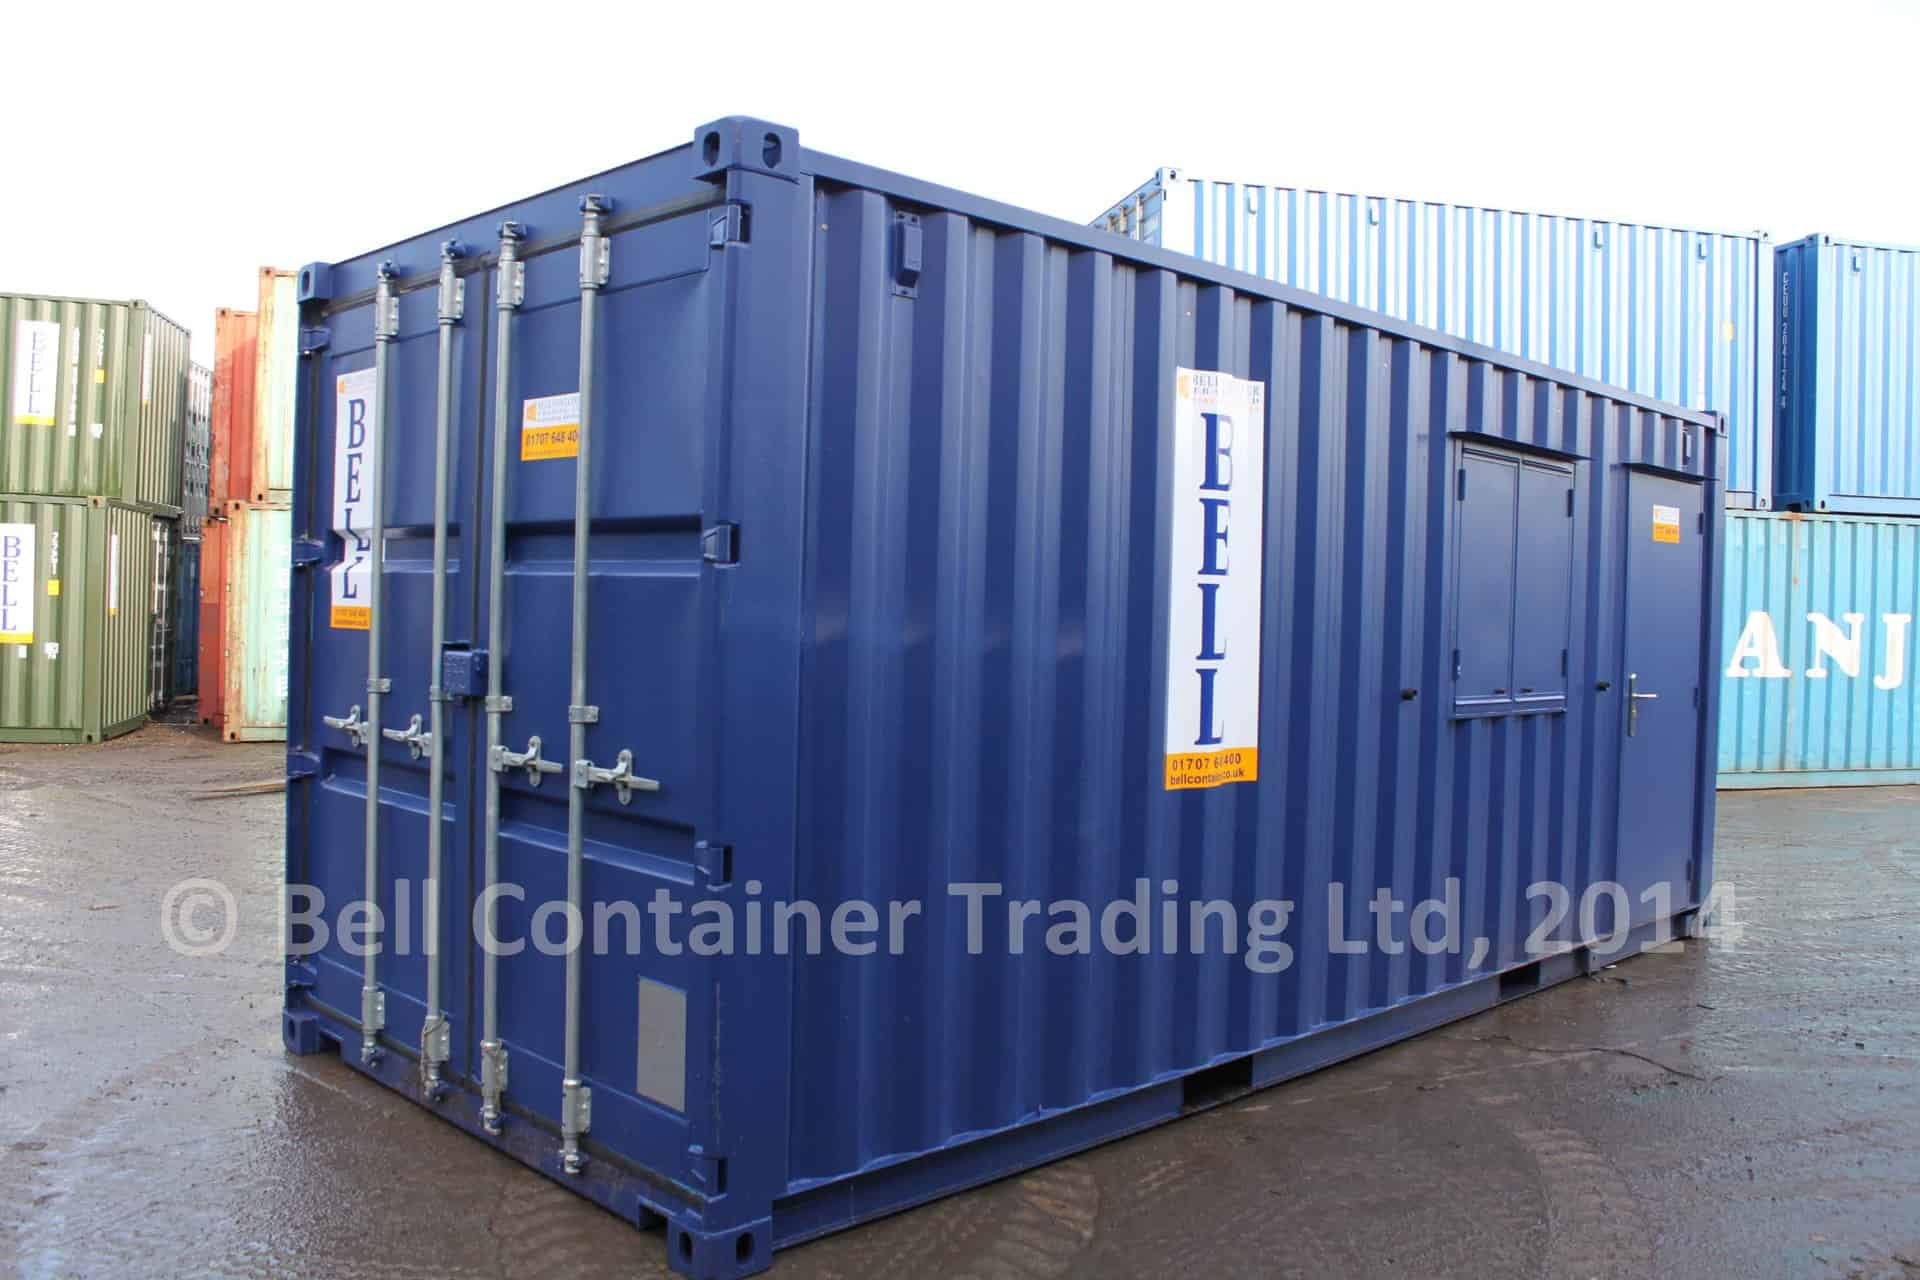 storage containers available for hire sale in london storage containers hire sales london. Black Bedroom Furniture Sets. Home Design Ideas